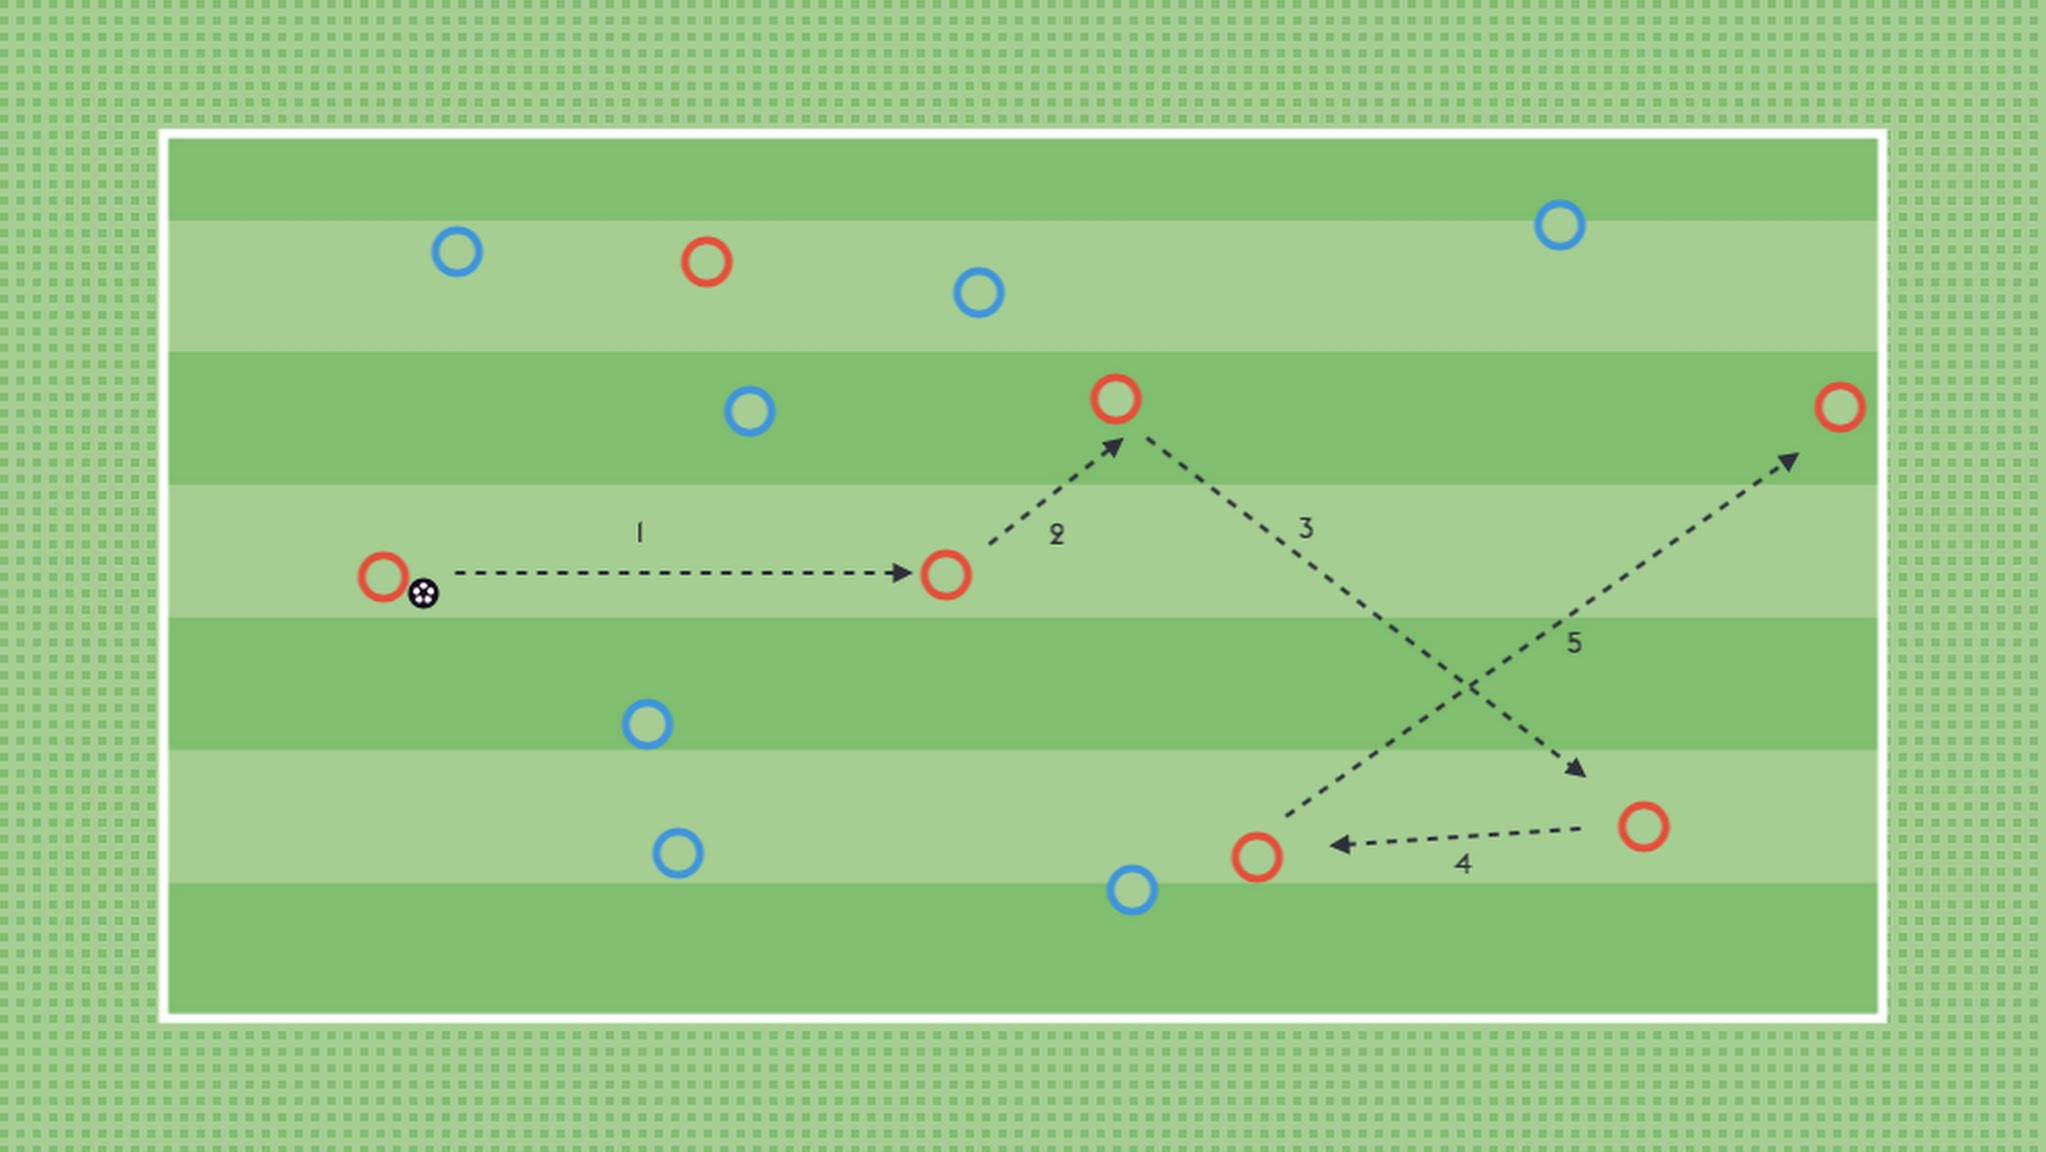 By shifting the goalposts (the number of passes needed to score) you're 'stretching' the players in their ability to score these goals. By not telling them ahead of time, you're building on their adaptability and resilience as the goalposts have been shifted on them.